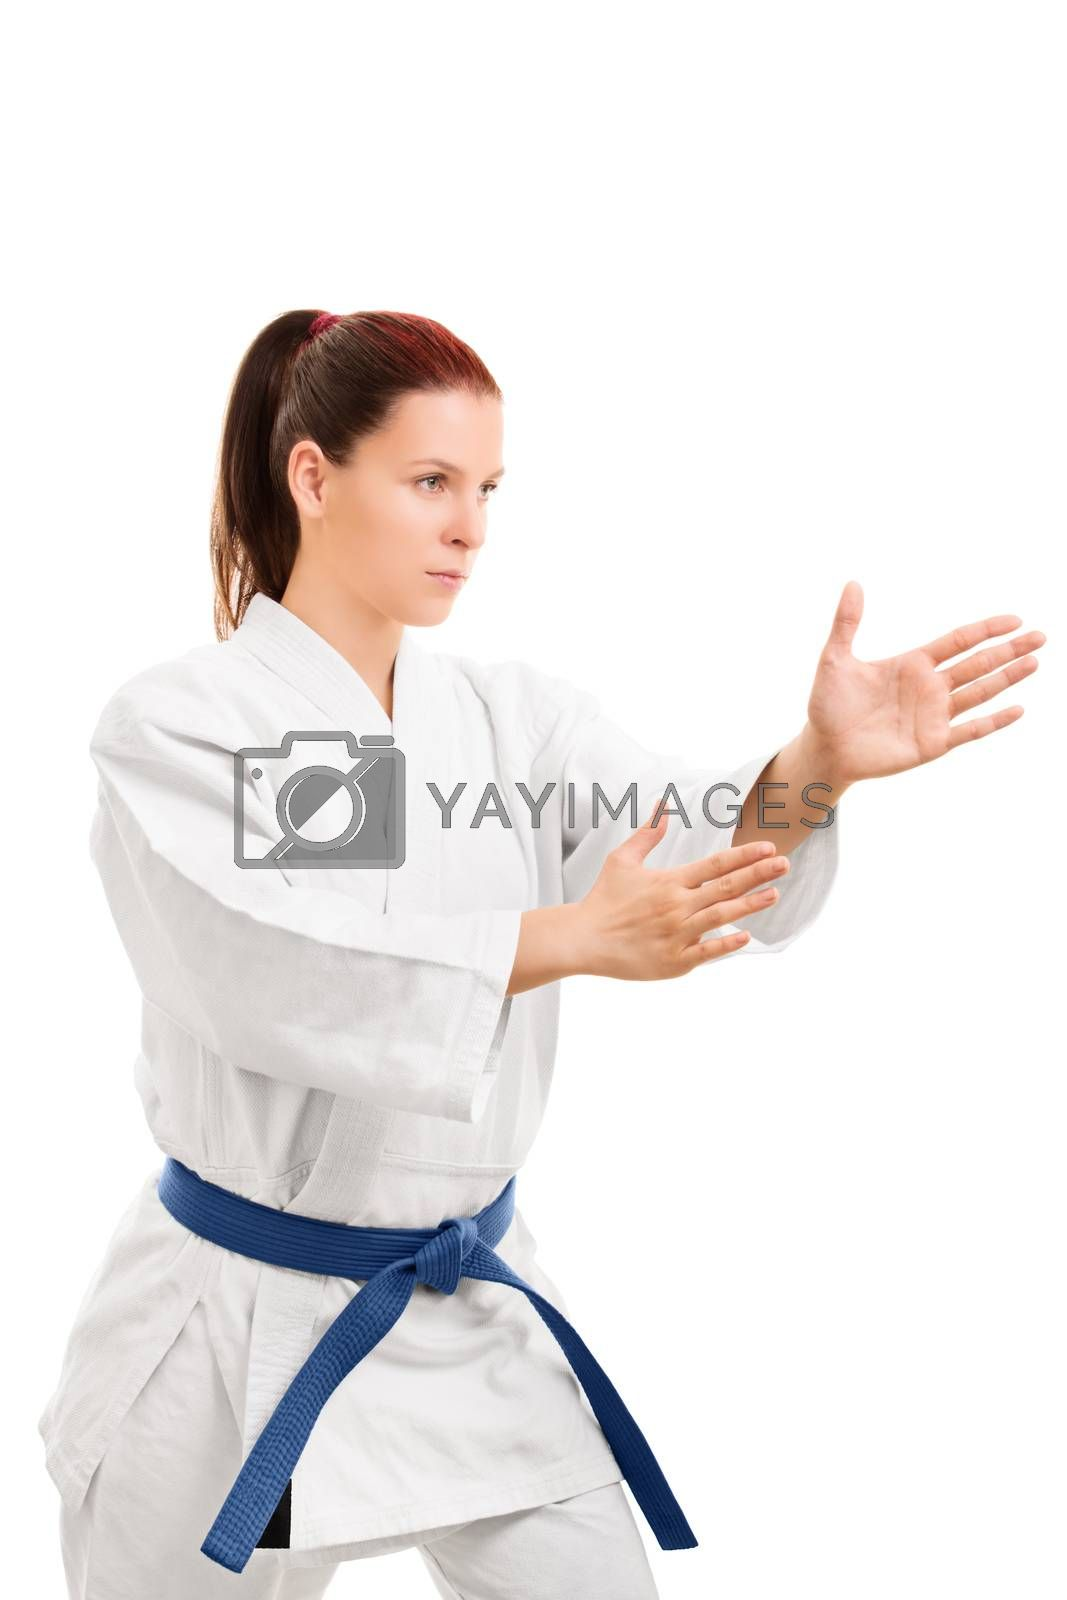 A portrait of a young girl in a kimono with blue belt in a fighting stance, isolated on white background.